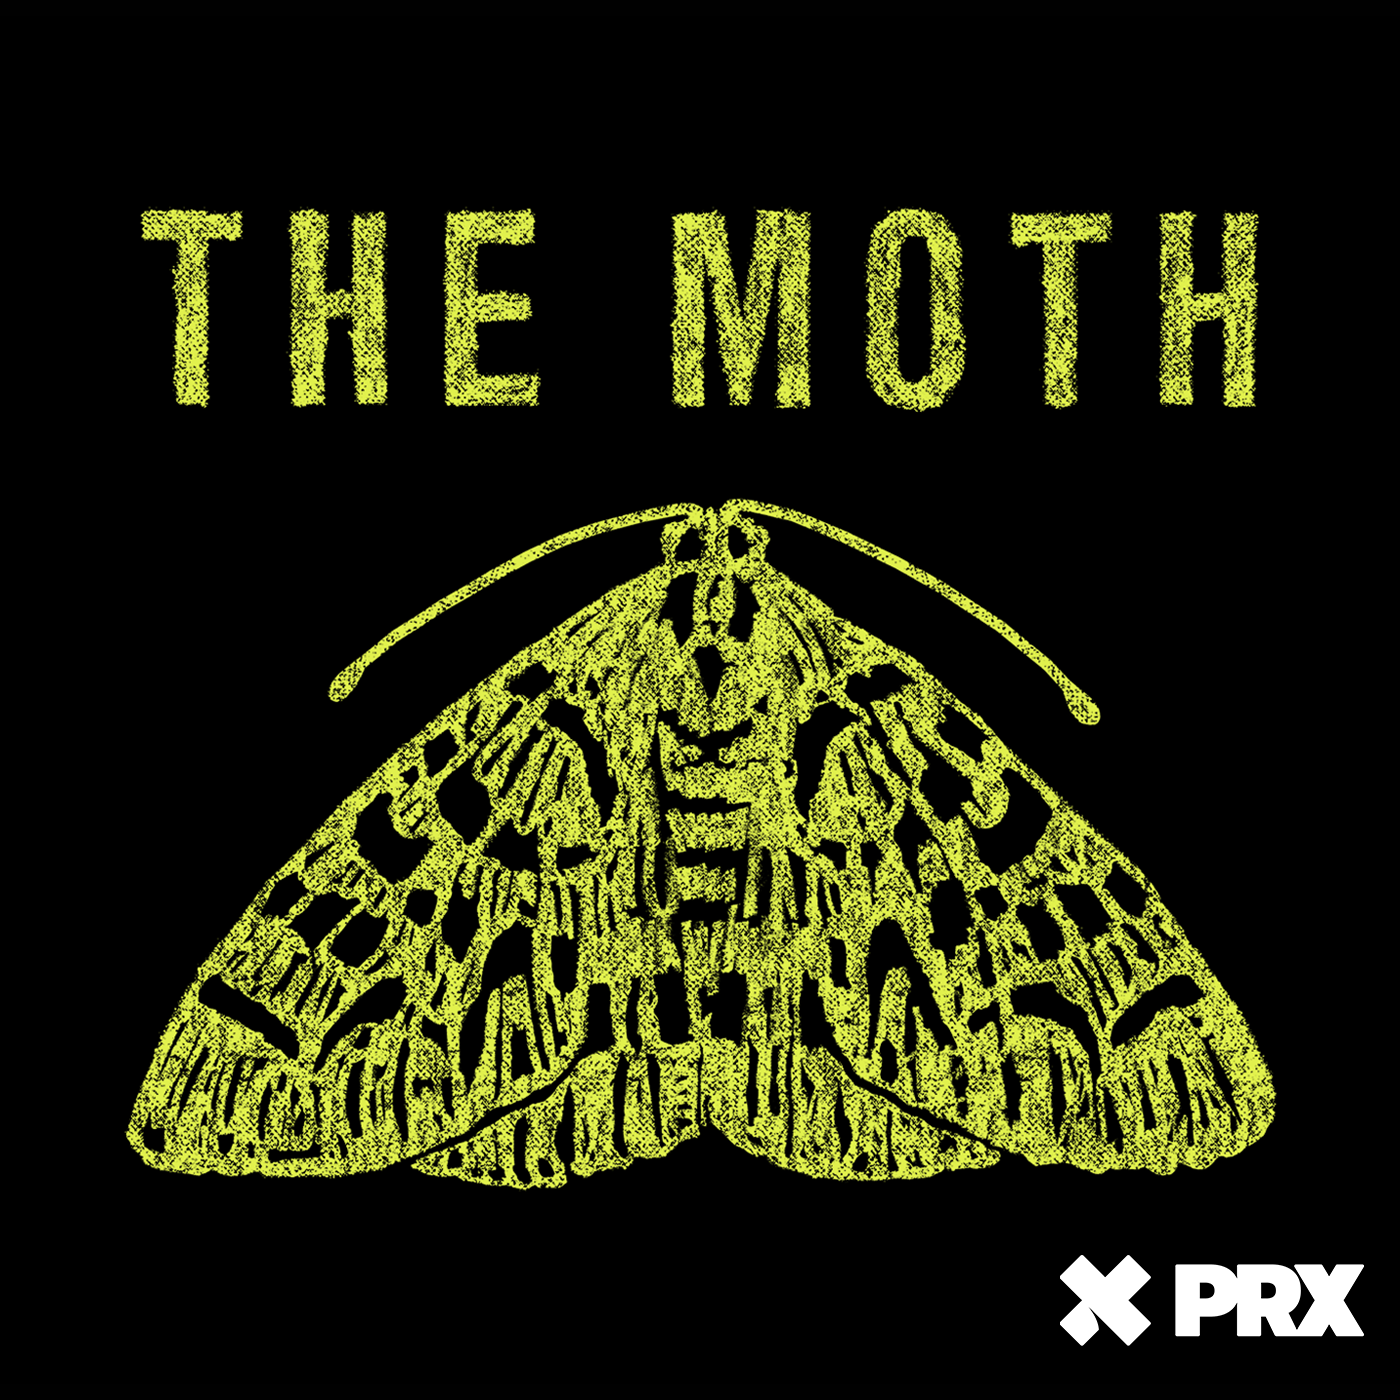 The Moth Radio Hour: PTSD, Lost Art and The Berlin Wall